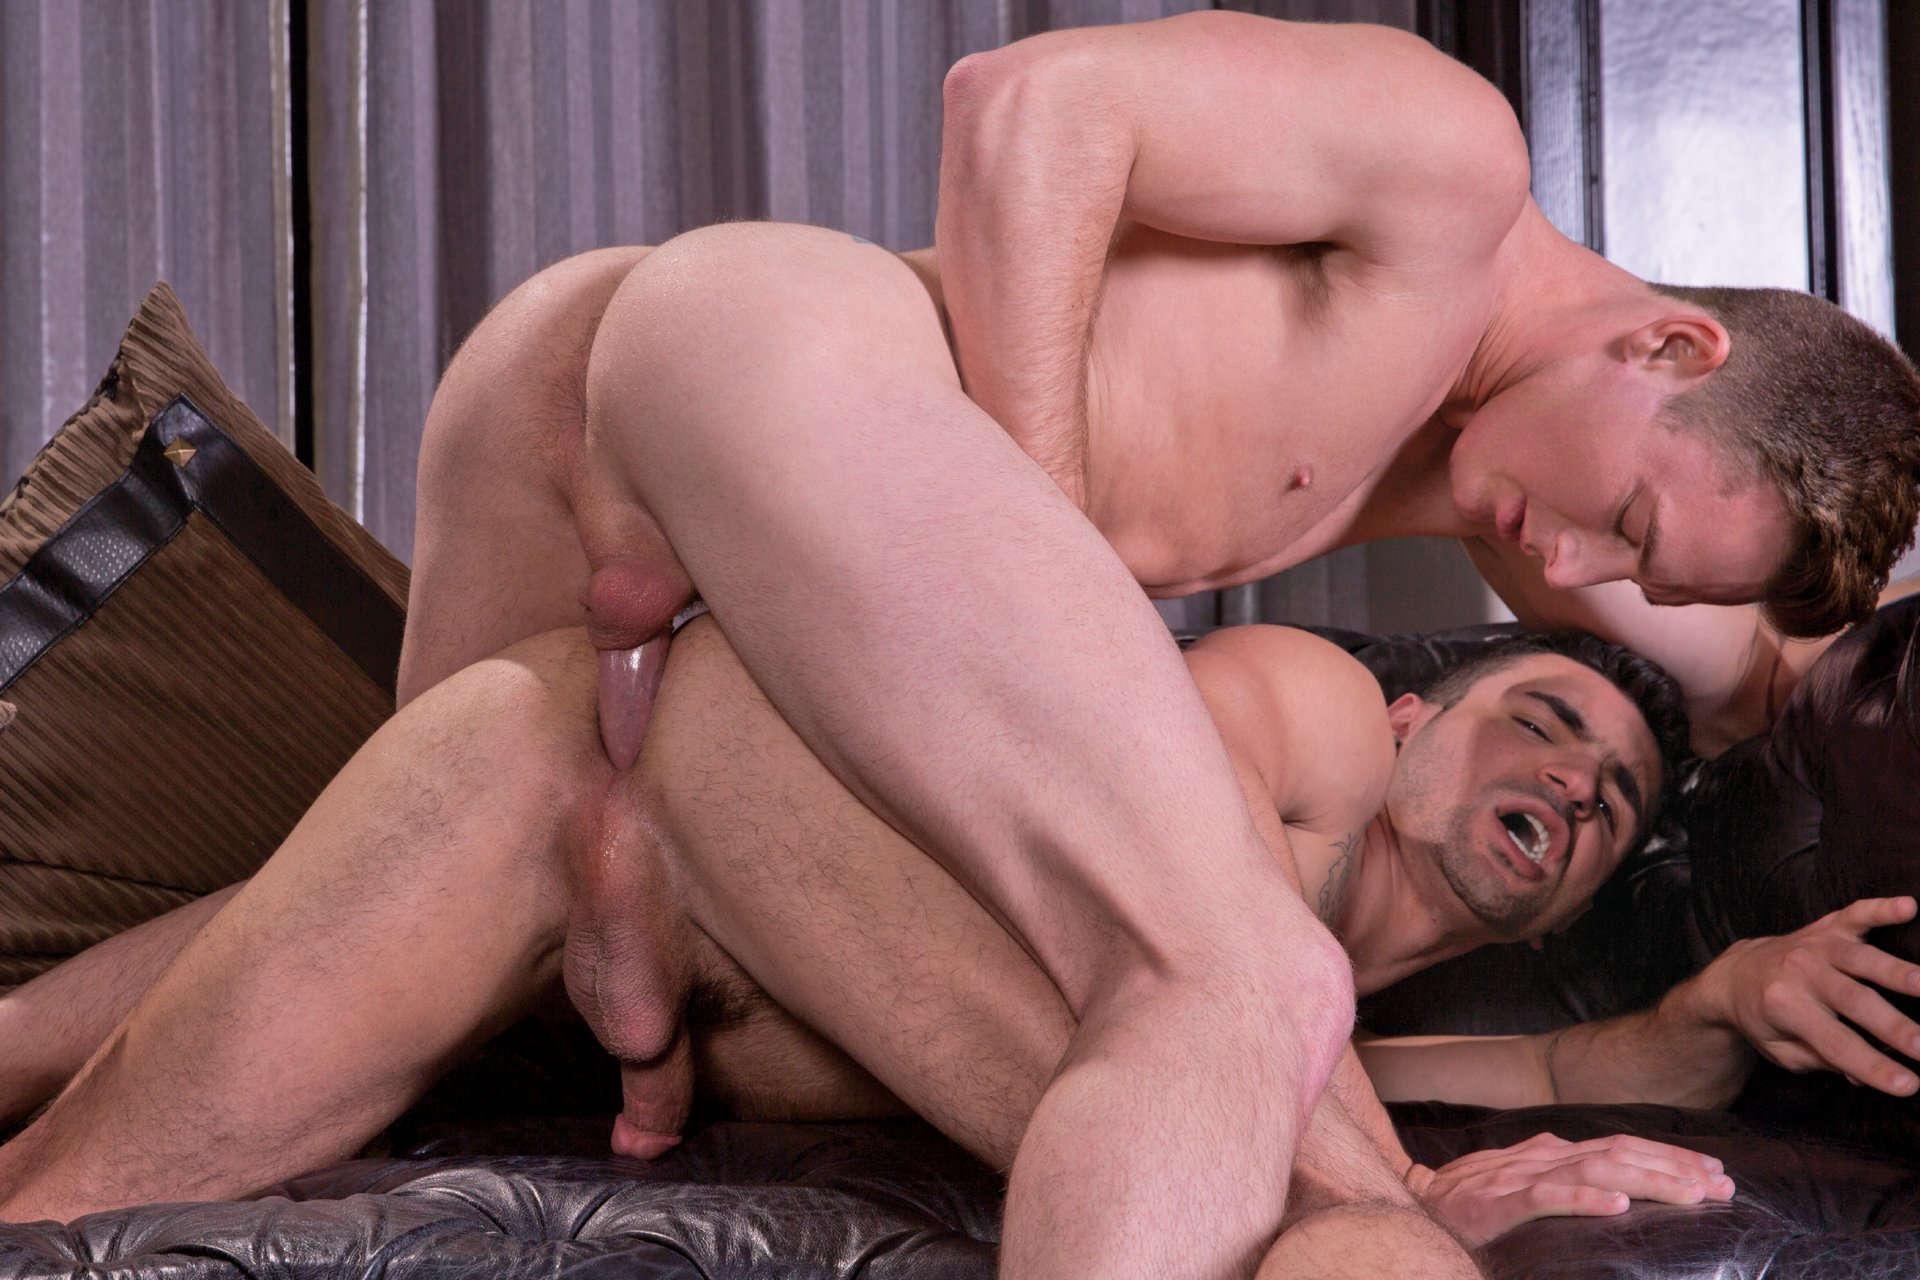 Boy to boy gay sex pics ian demonstrates ashton a great time in his